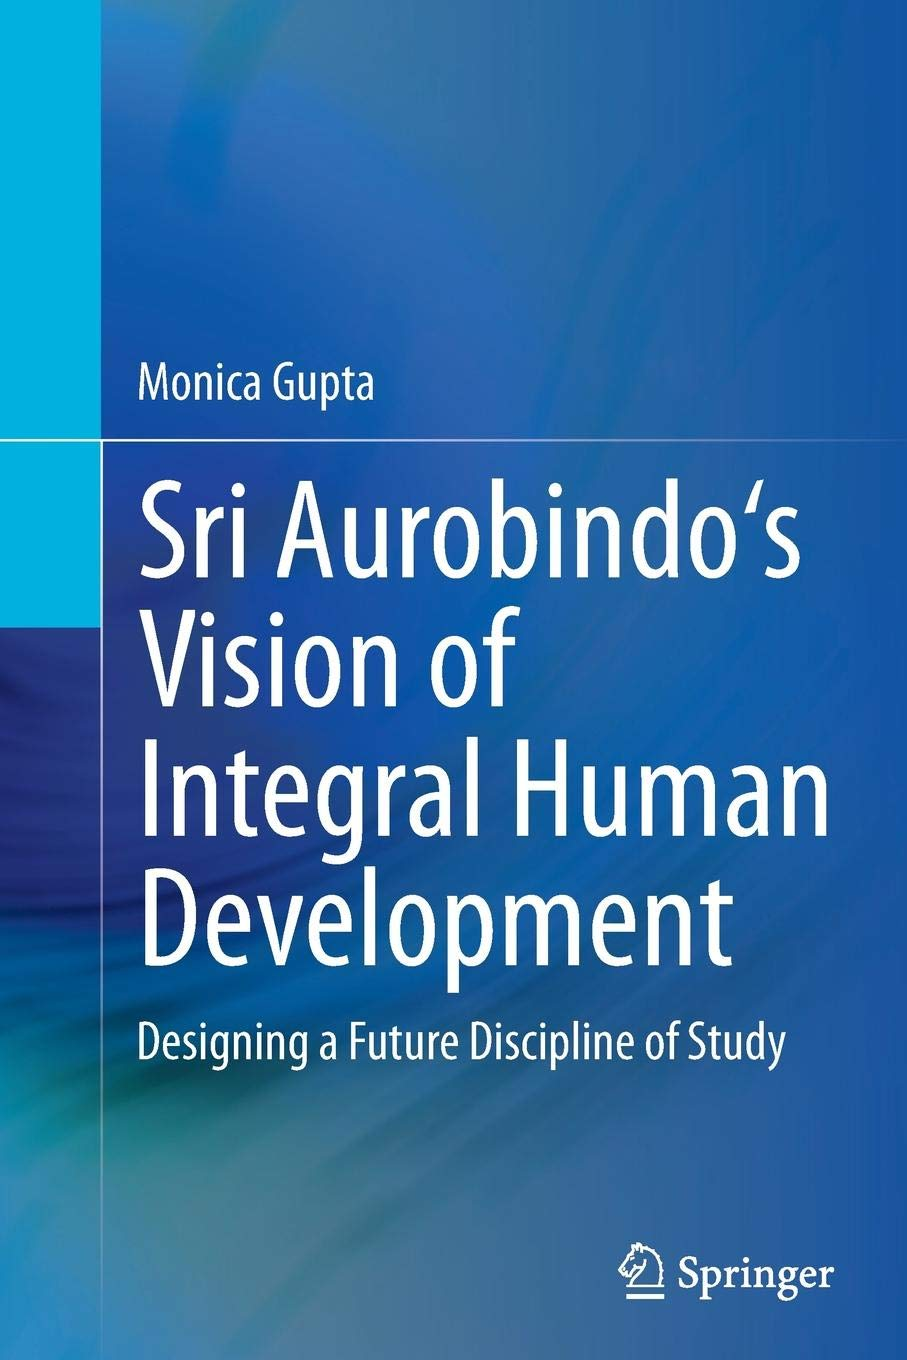 Sri Aurobindos Vision of Integral Human Development: Designing a Future Discipline of Study